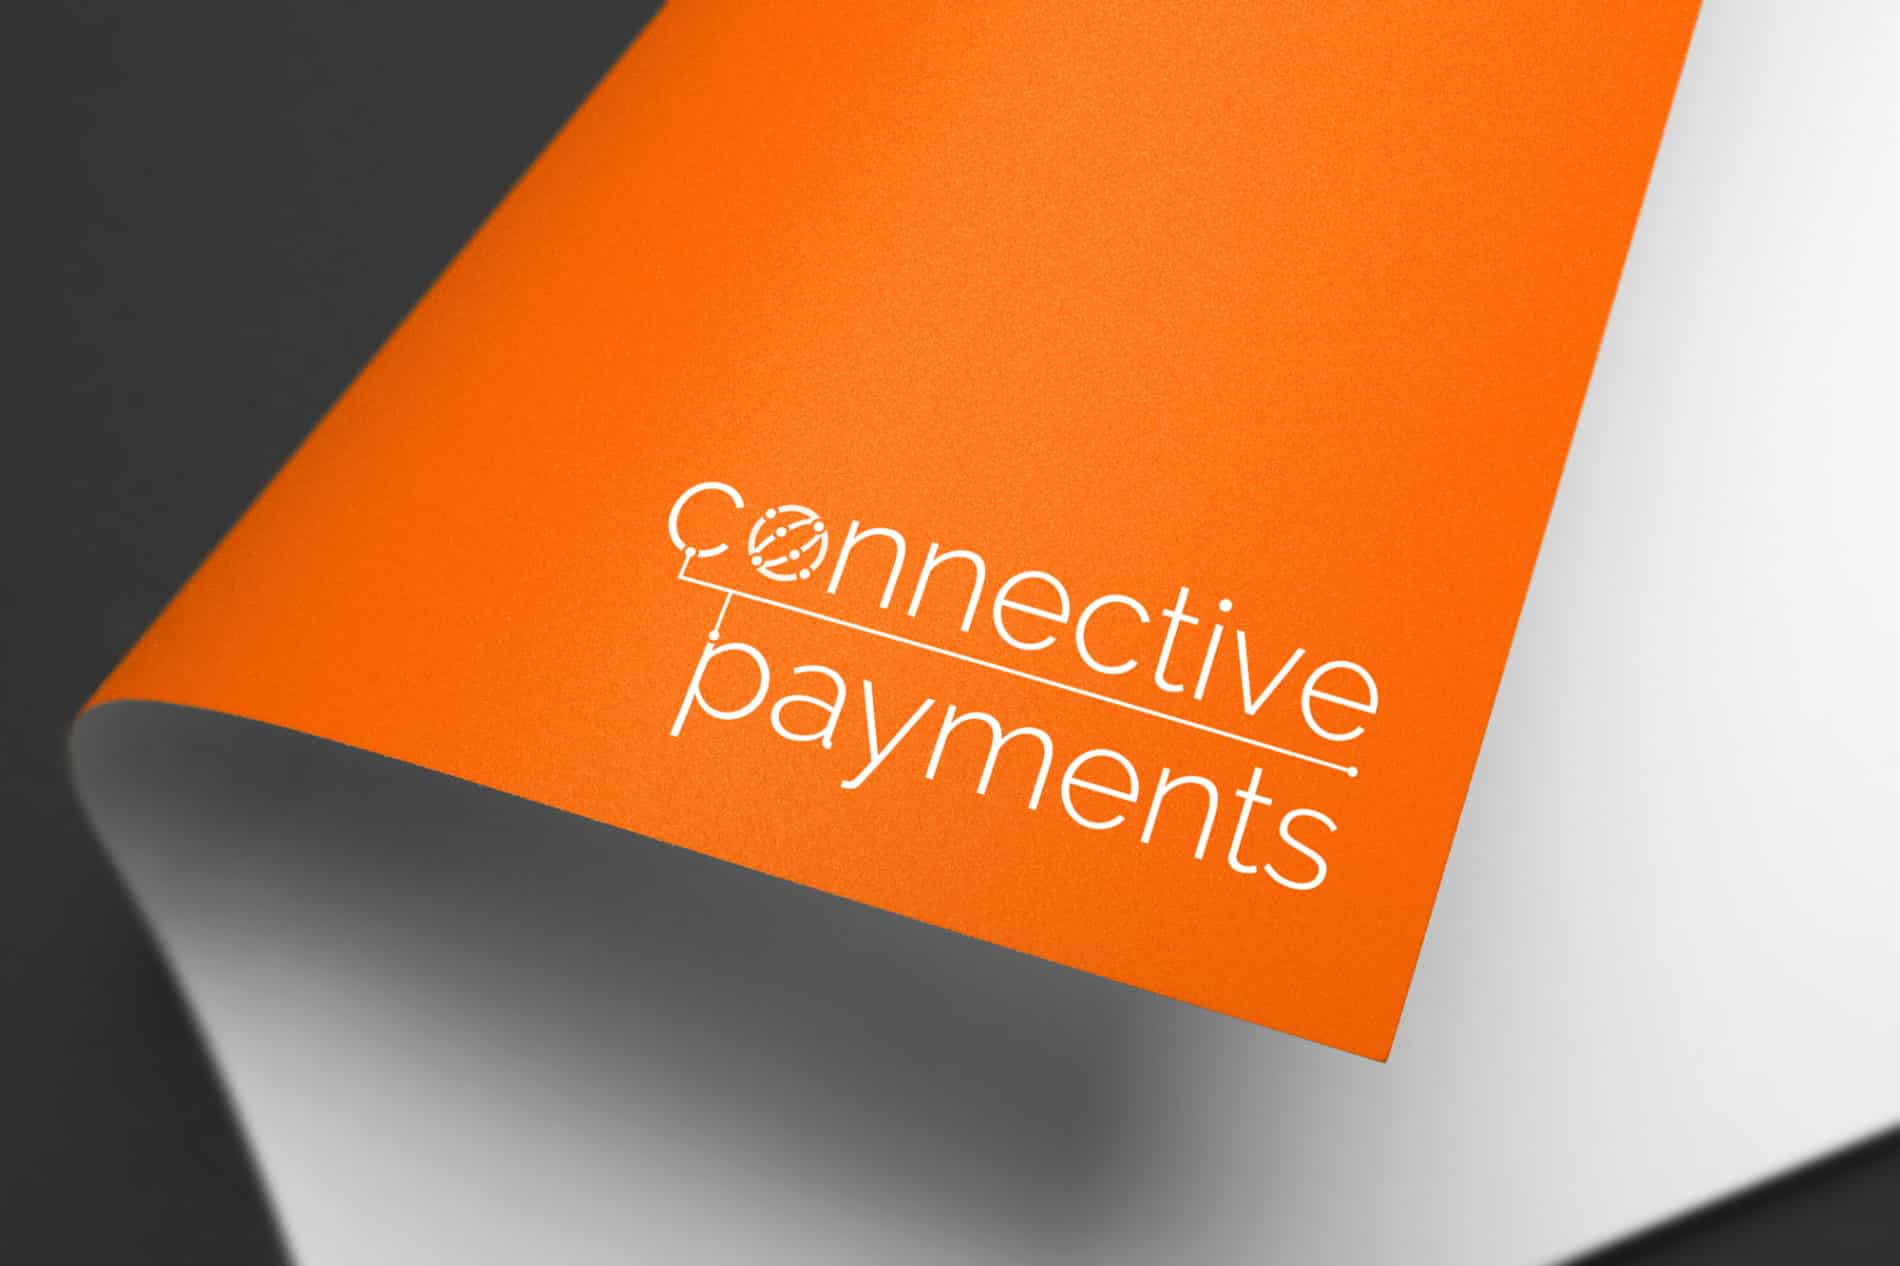 Connective Payments